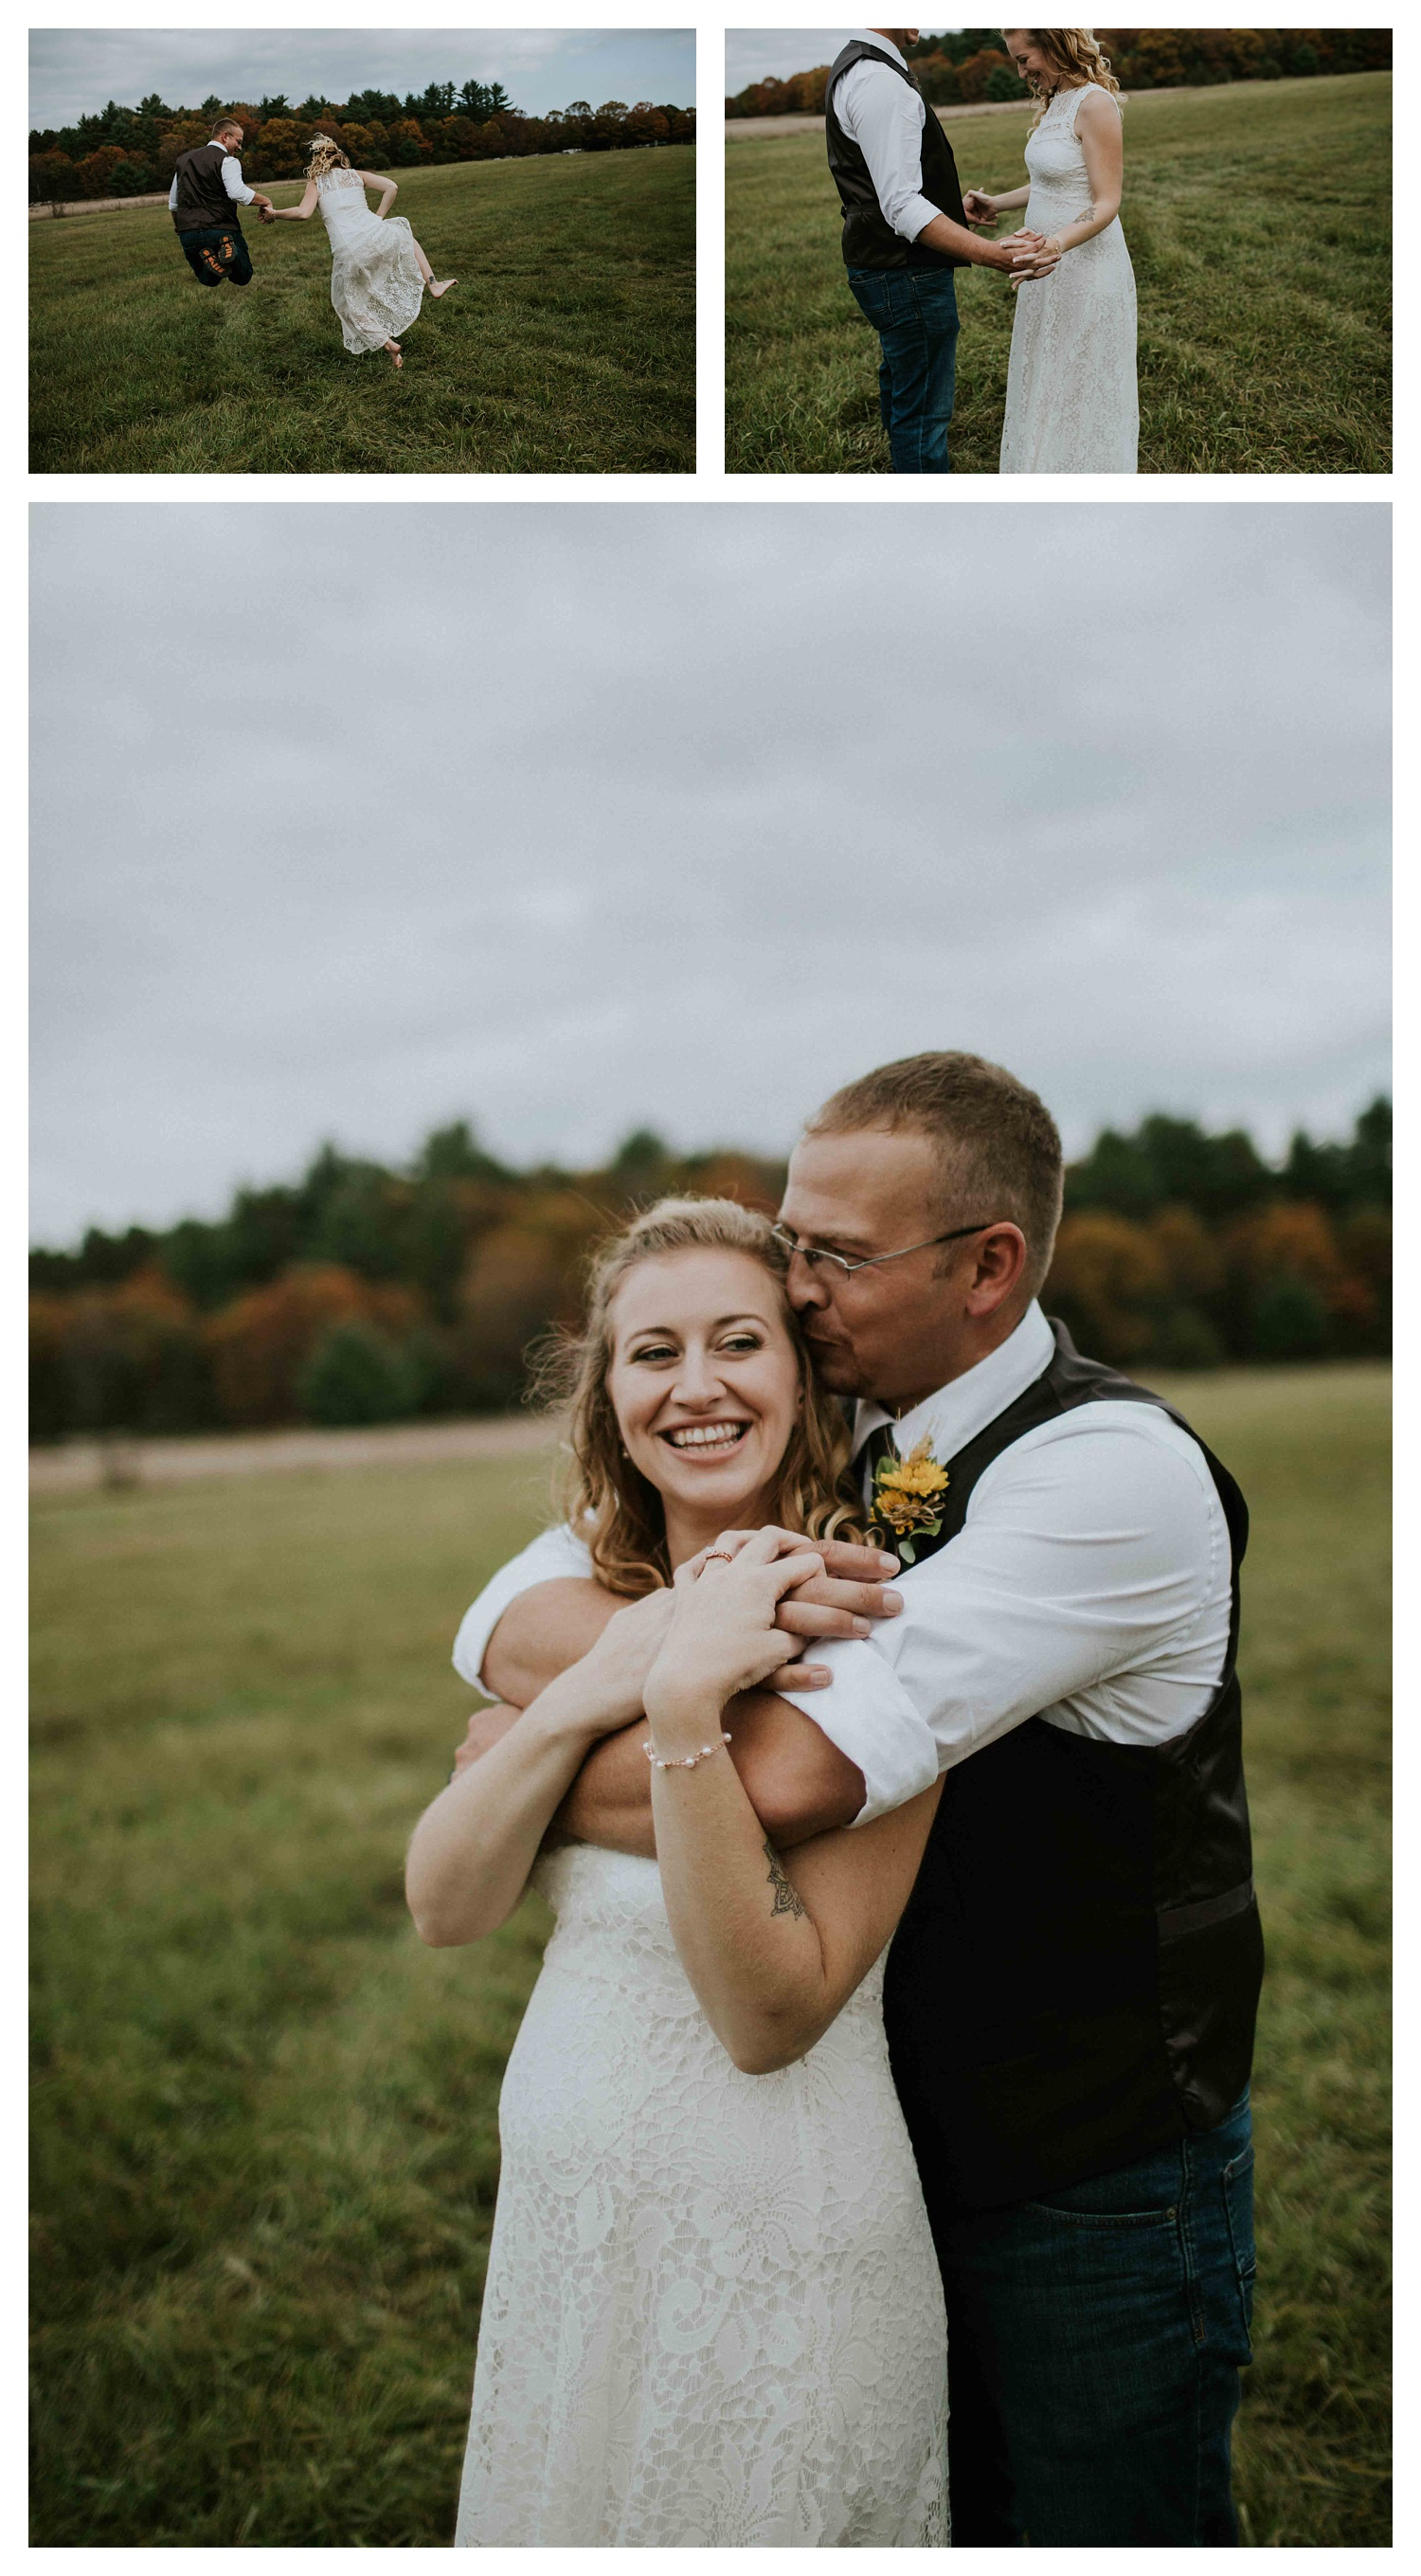 clauson barn wedding photographer chloe ann photography madison wisconsin photographer_0010.jpg